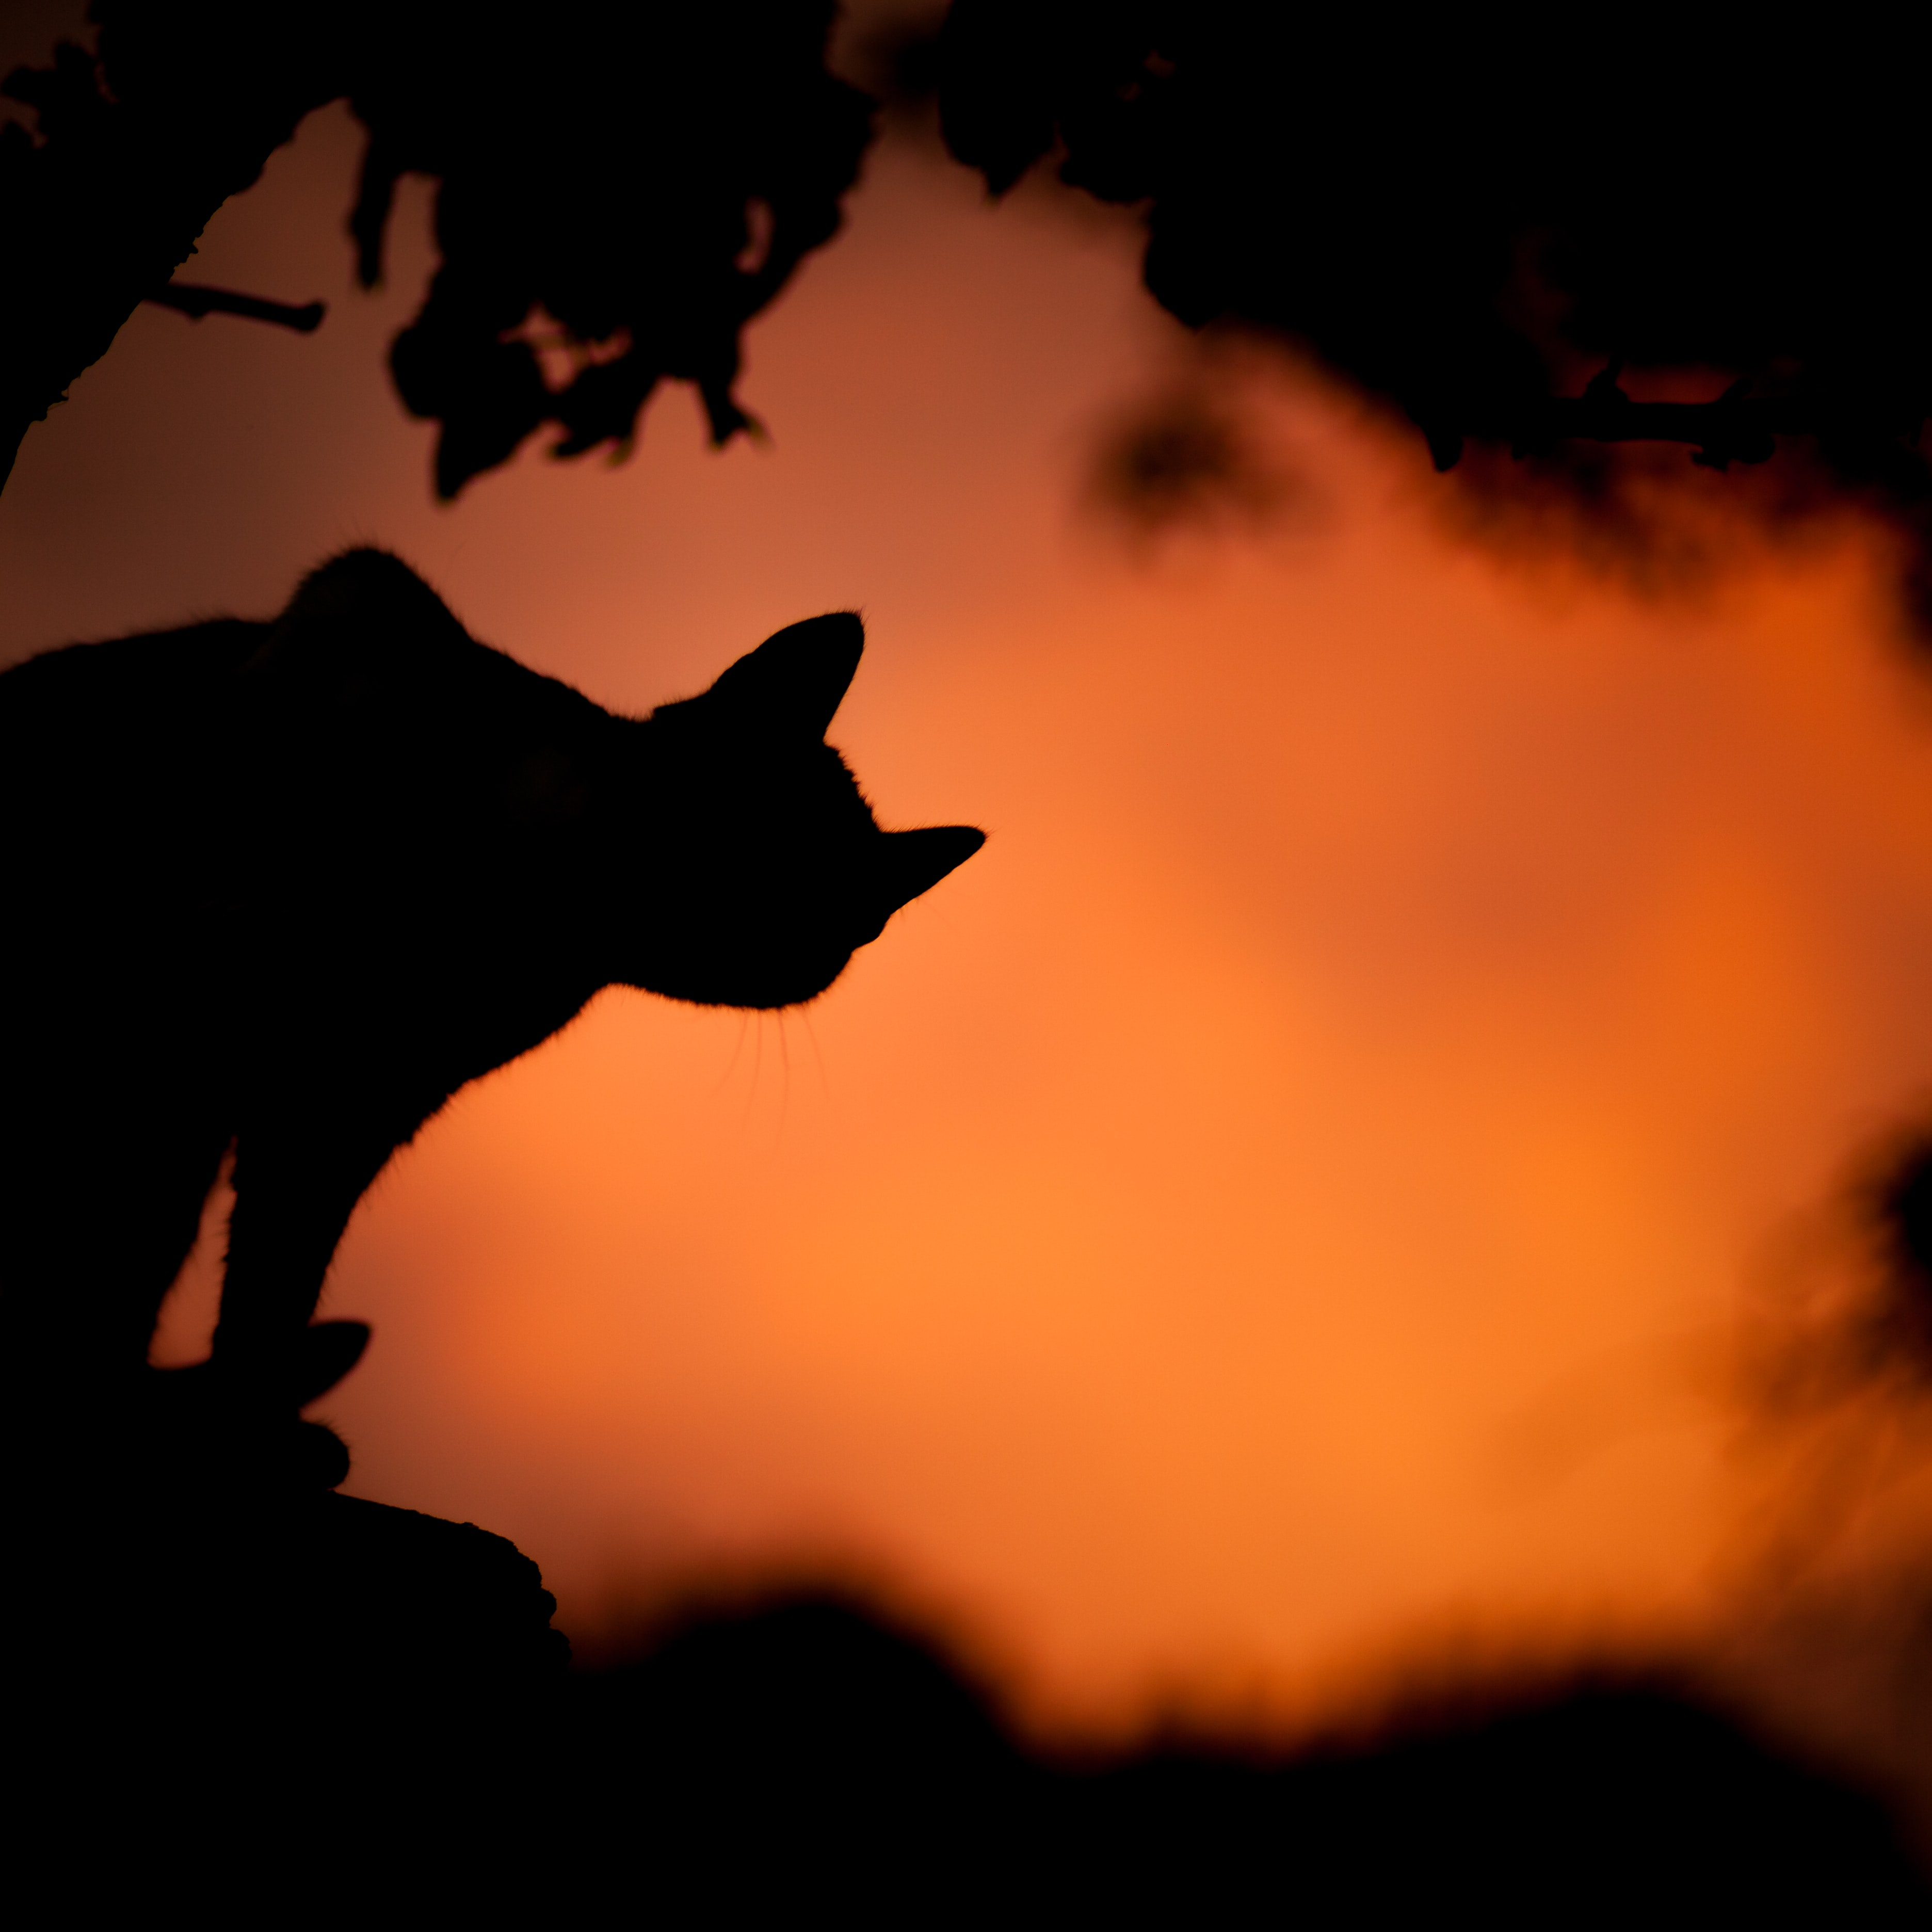 Silhouette shot of cat and tree against orange sky background in Cerkno